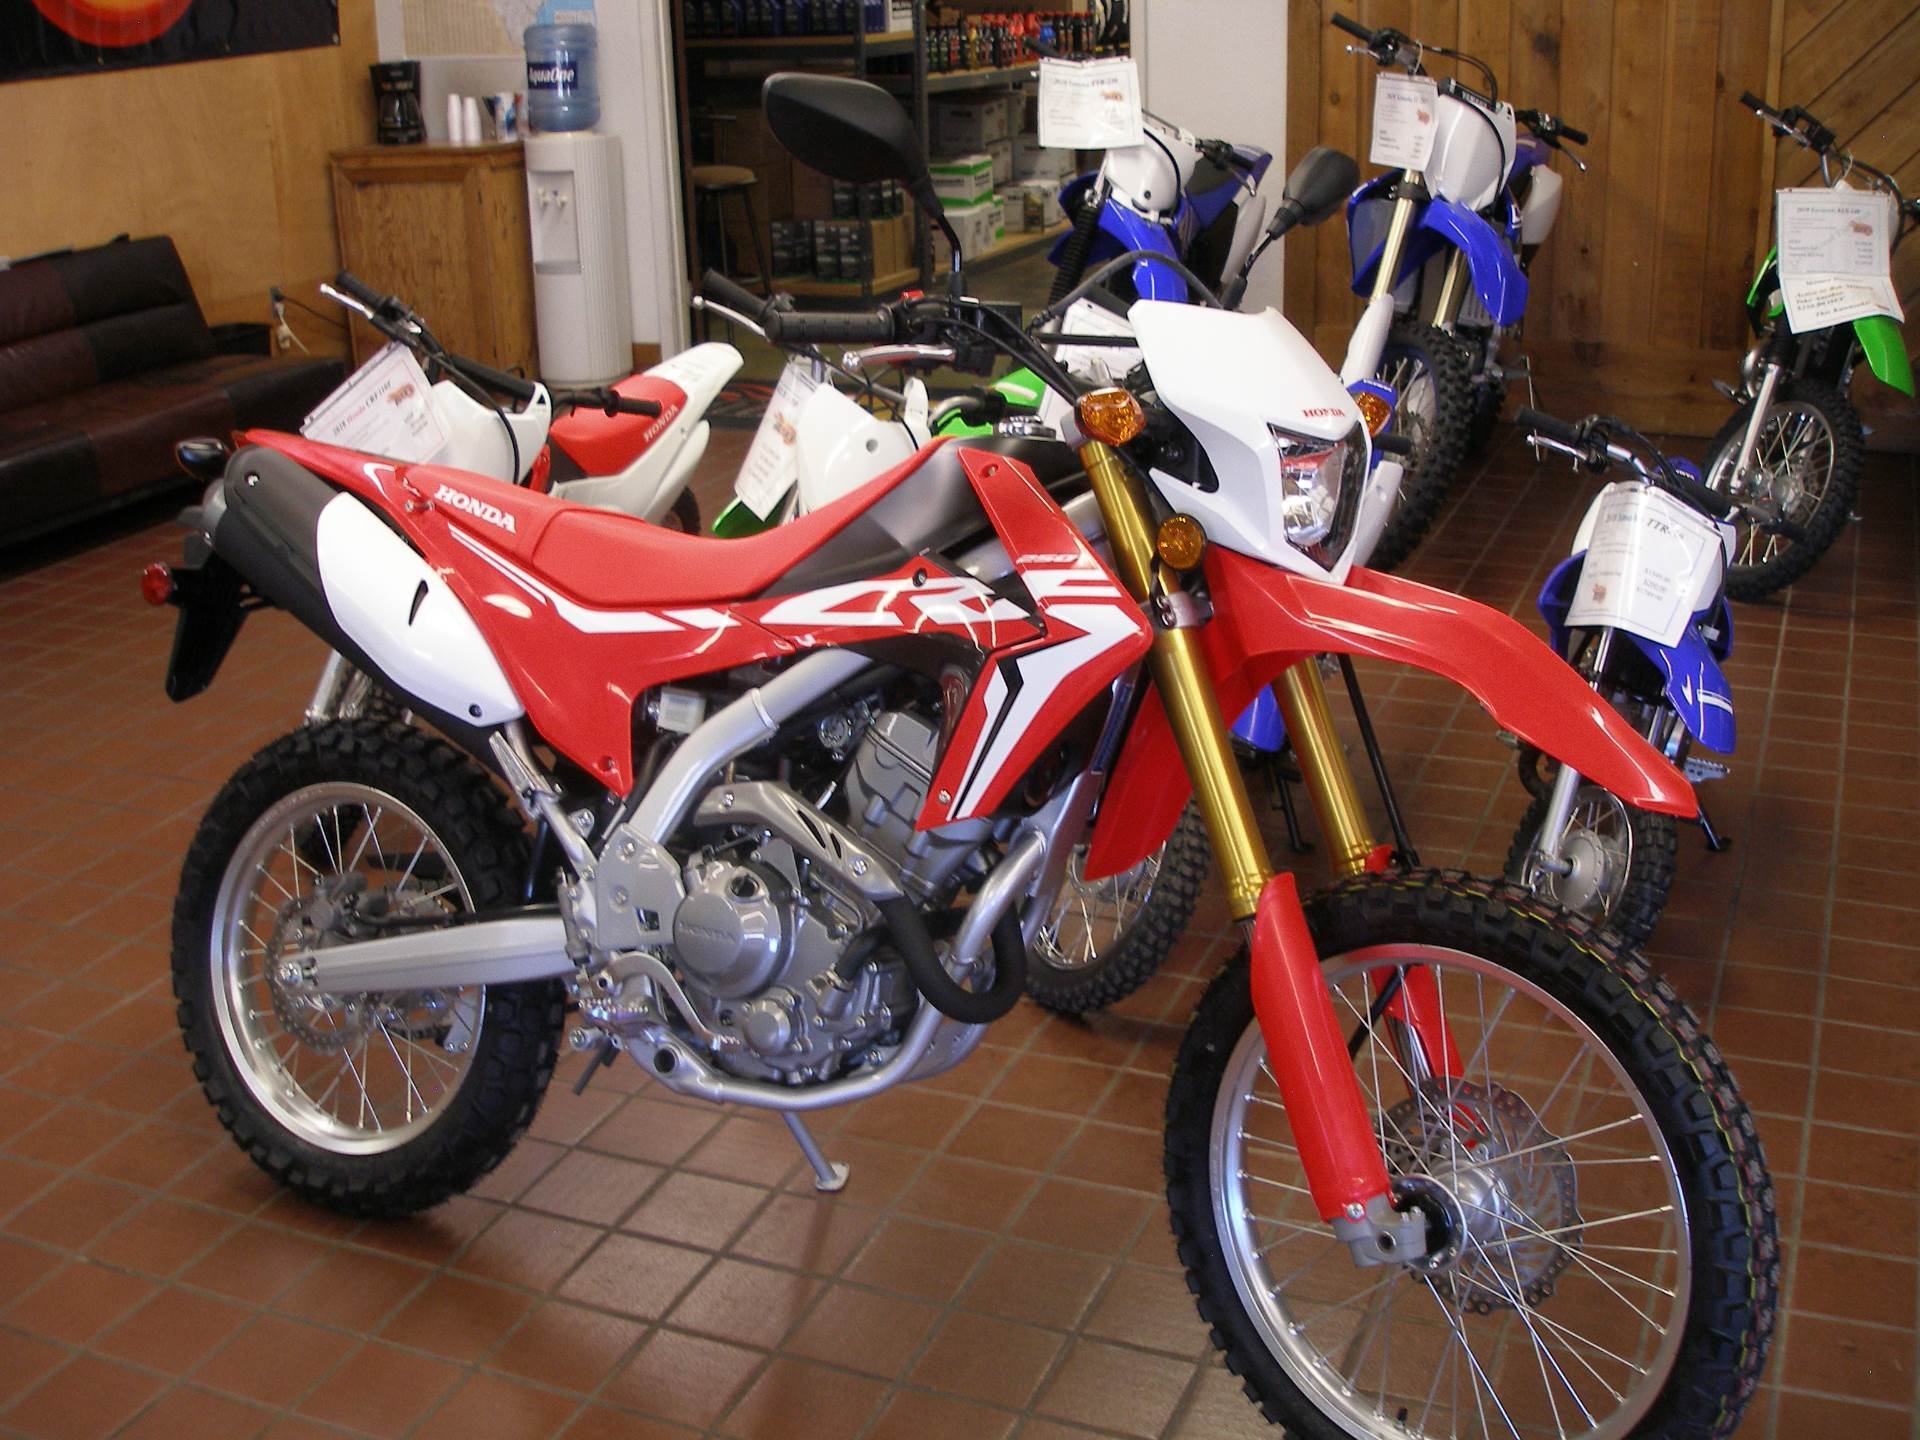 2018 Honda CRF250L for sale 3093